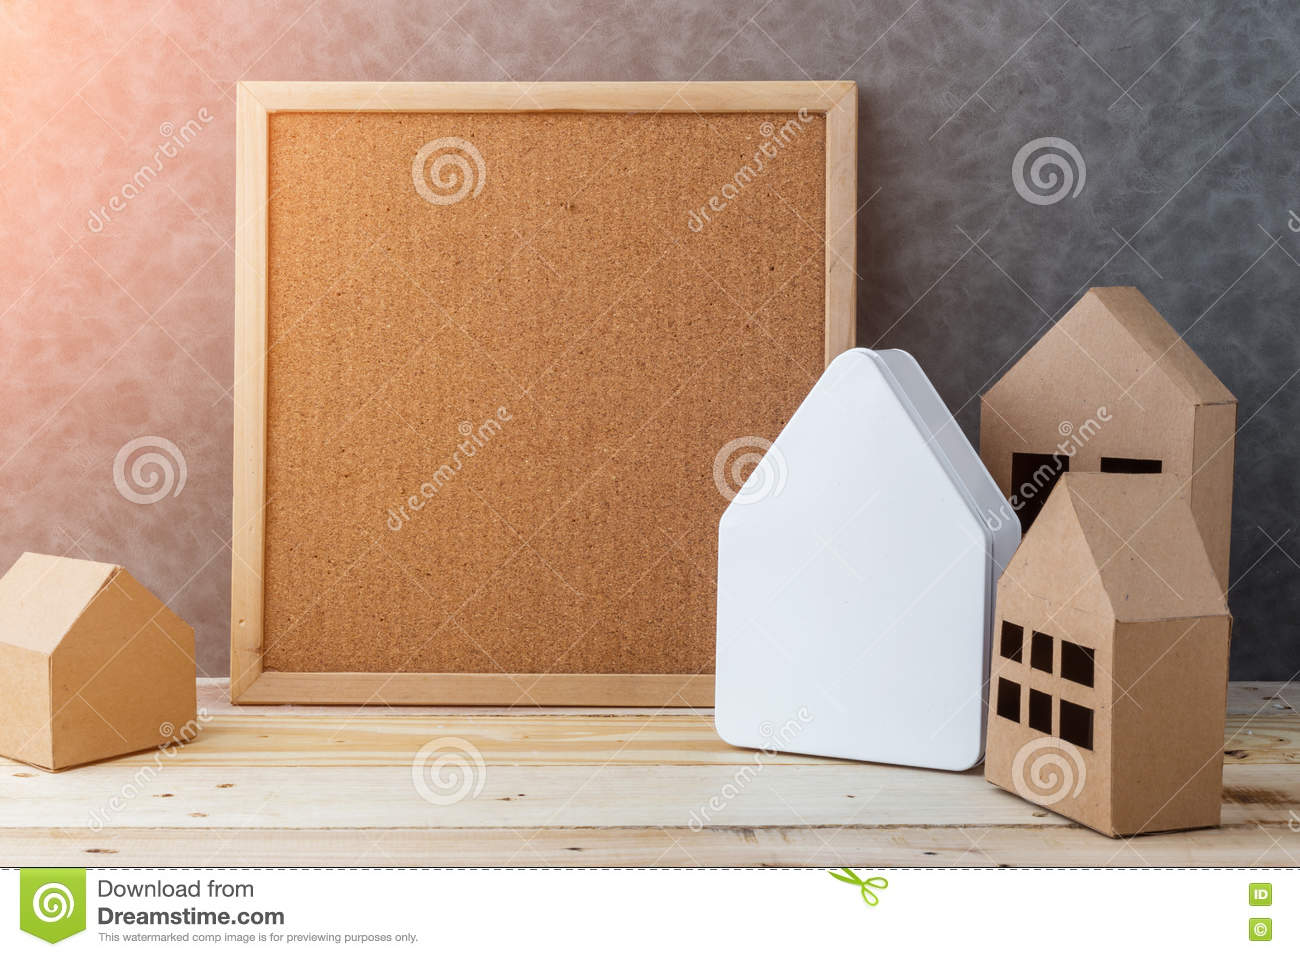 House Concept With House Shape Cardboard On Wooden Floor And